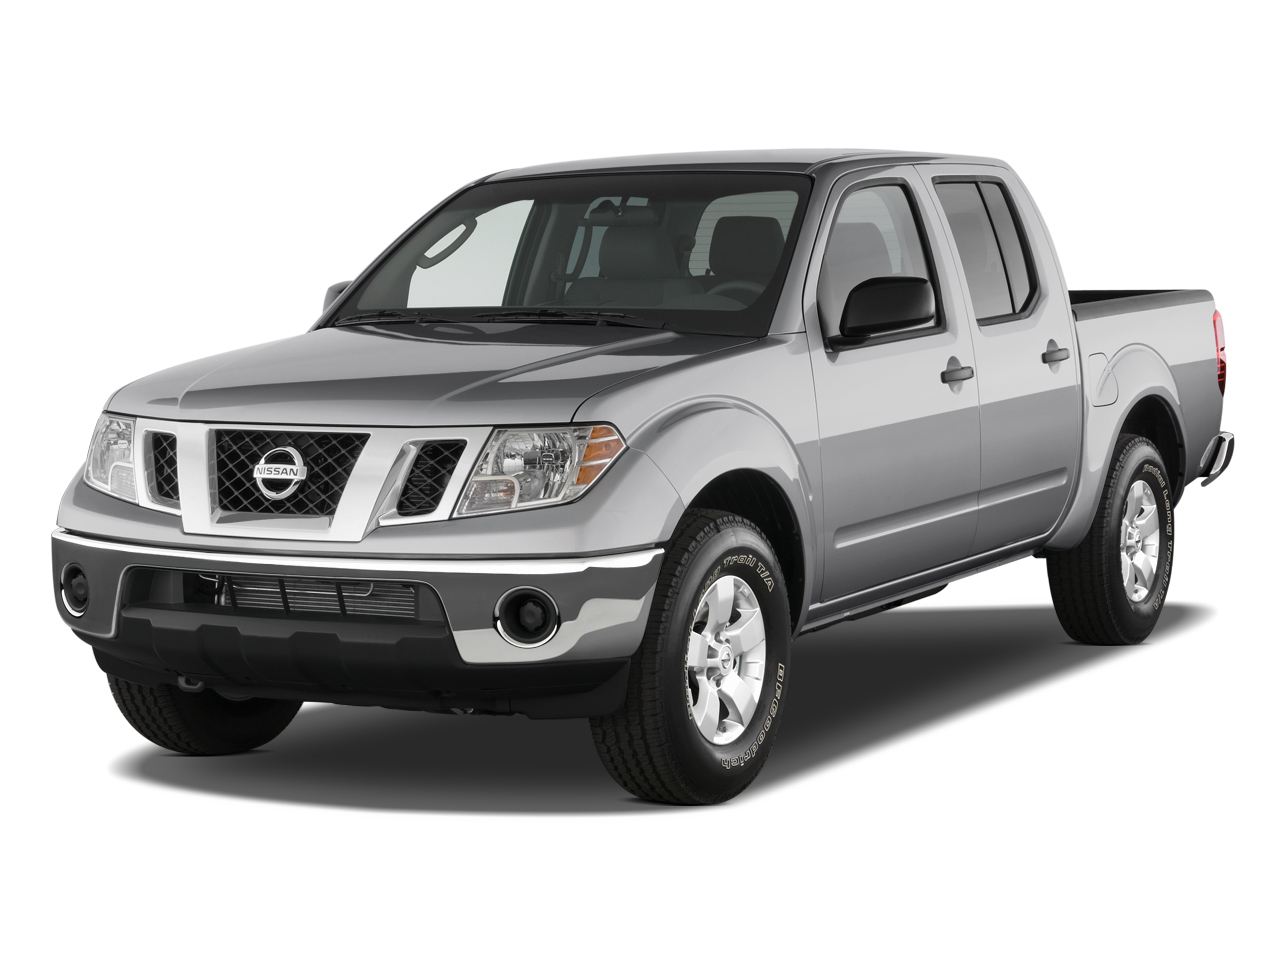 2011 nissan frontier review ratings specs prices and. Black Bedroom Furniture Sets. Home Design Ideas